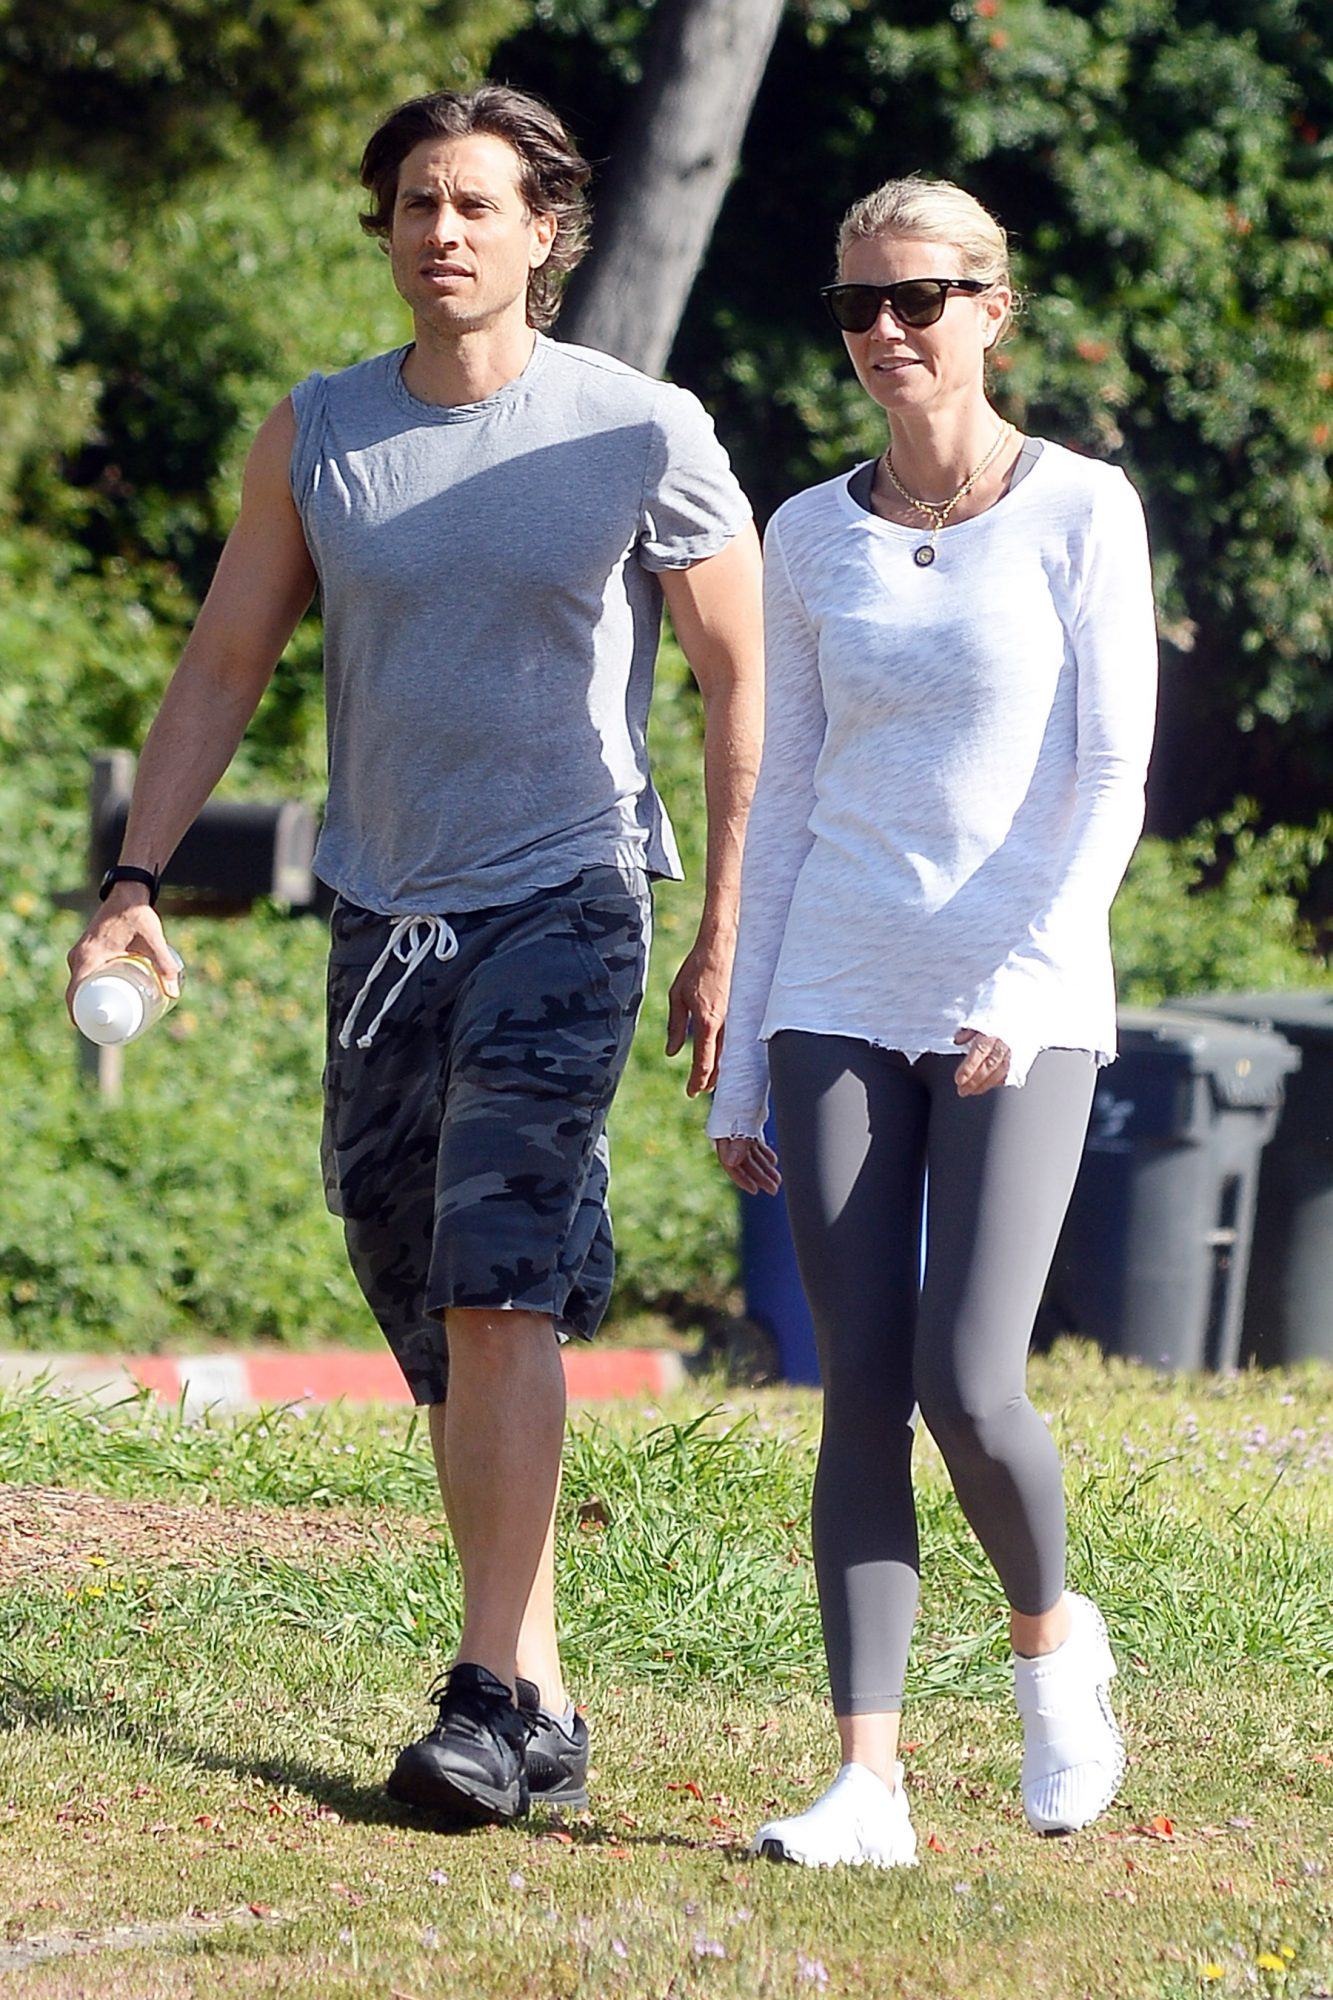 EXCLUSIVE: Gwyneth Paltrow and Brad Falchuk are Spotted on a Hike in Los Angeles.